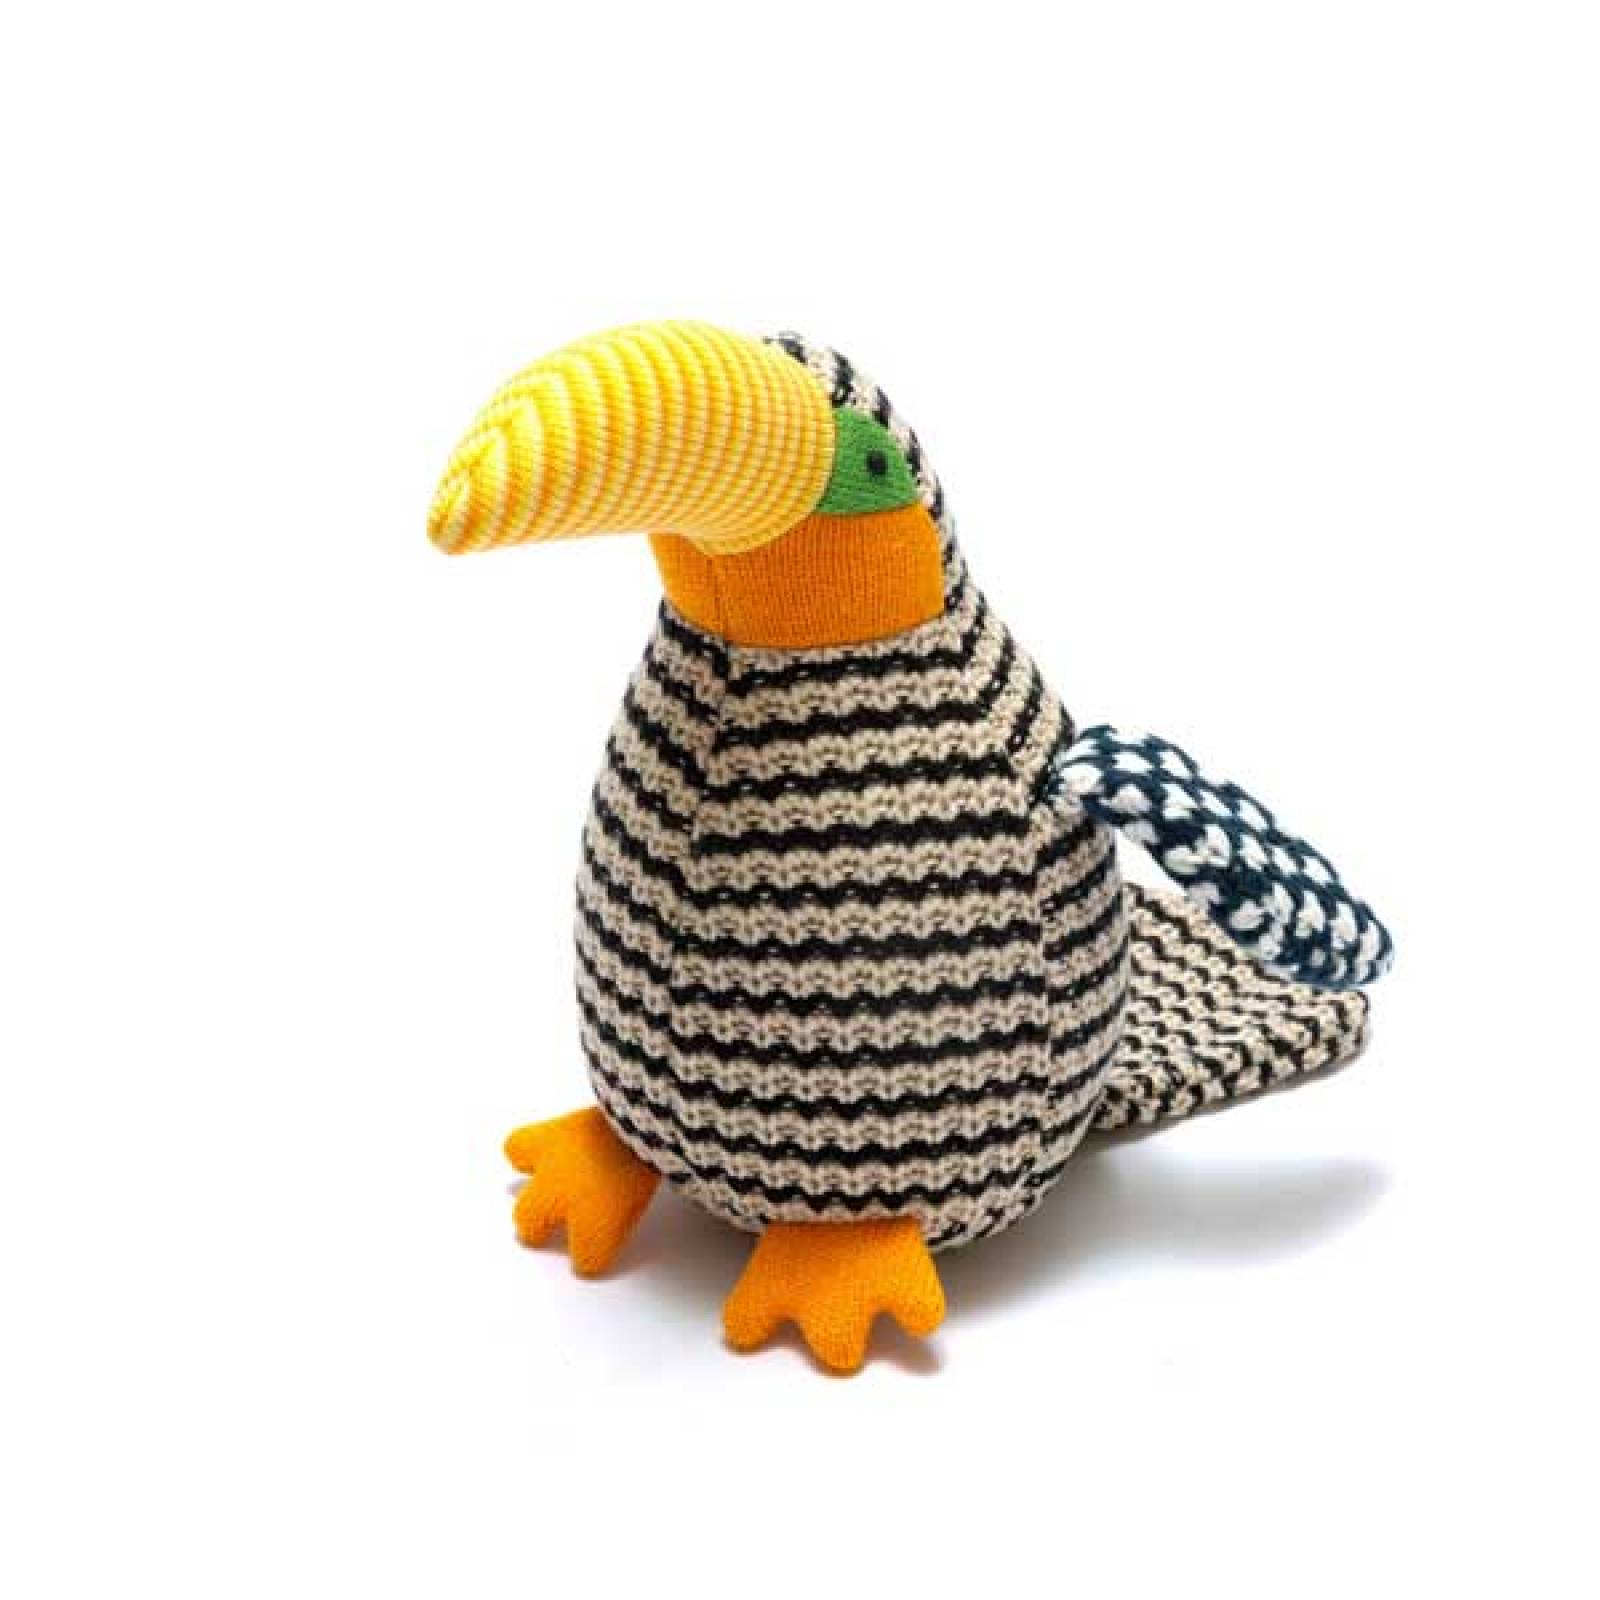 Benjie The Toucan Knitted Soft Toy 0+